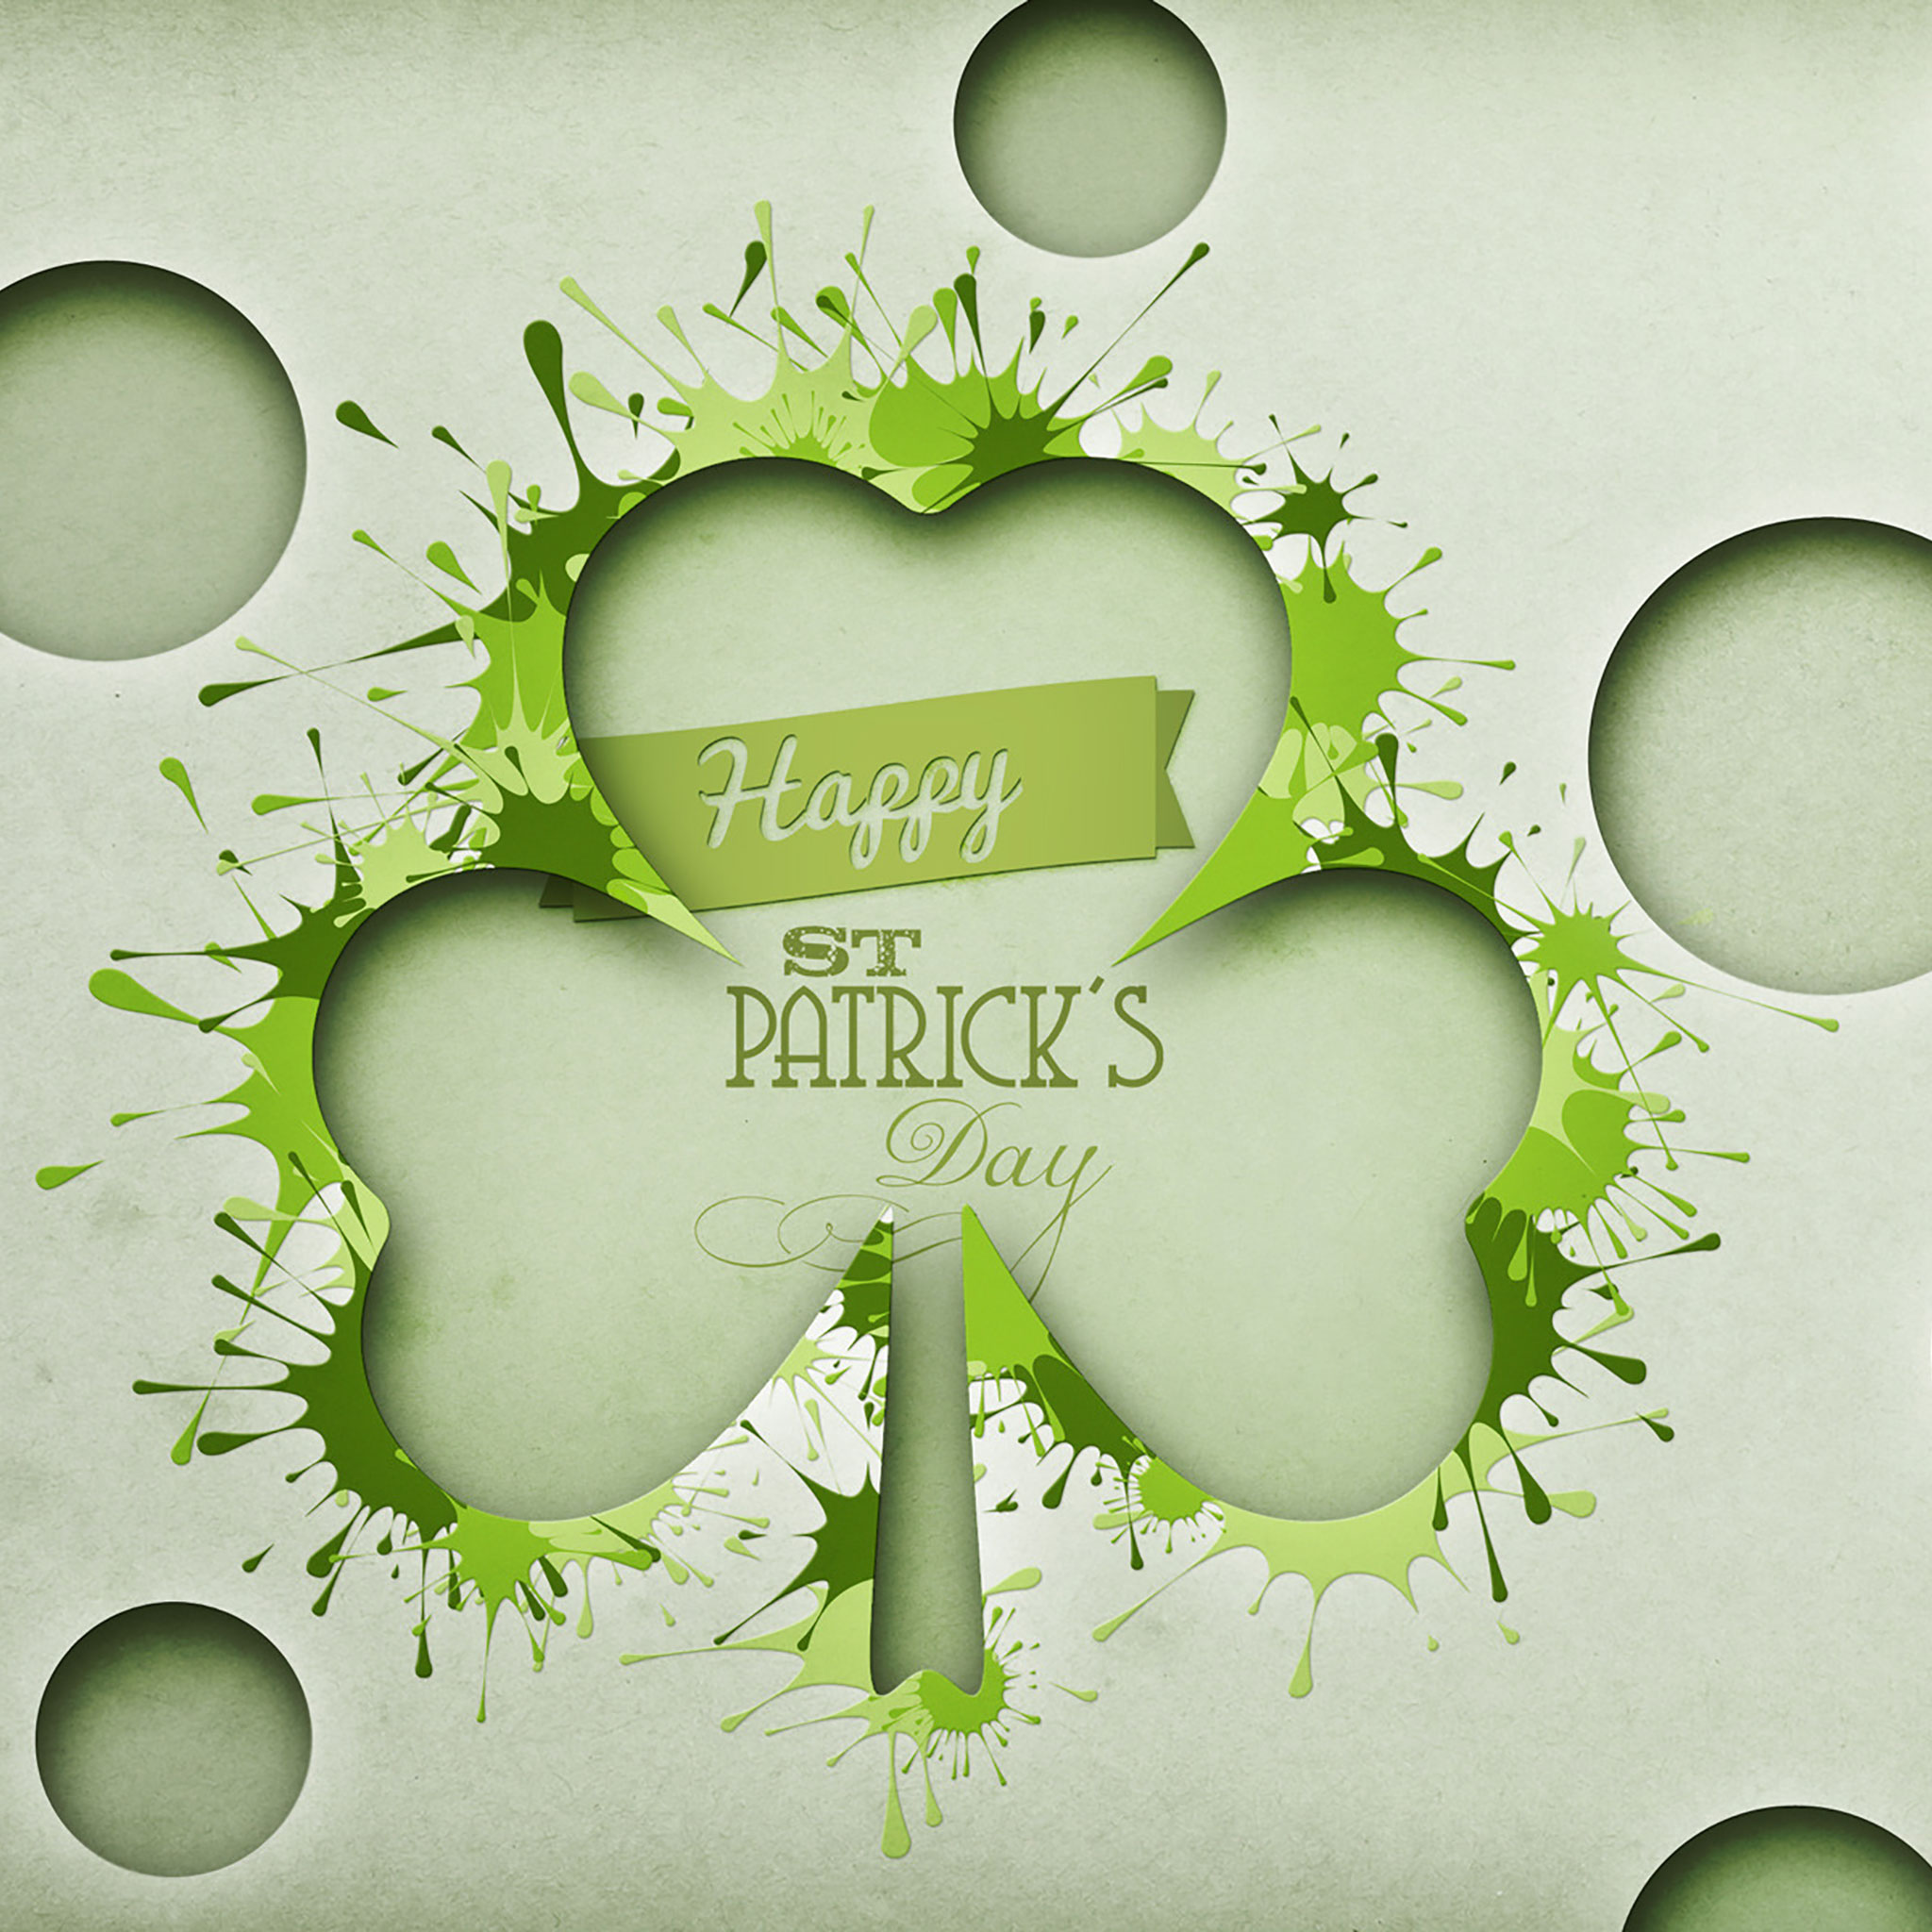 12 st patty s day ipad backgrounds